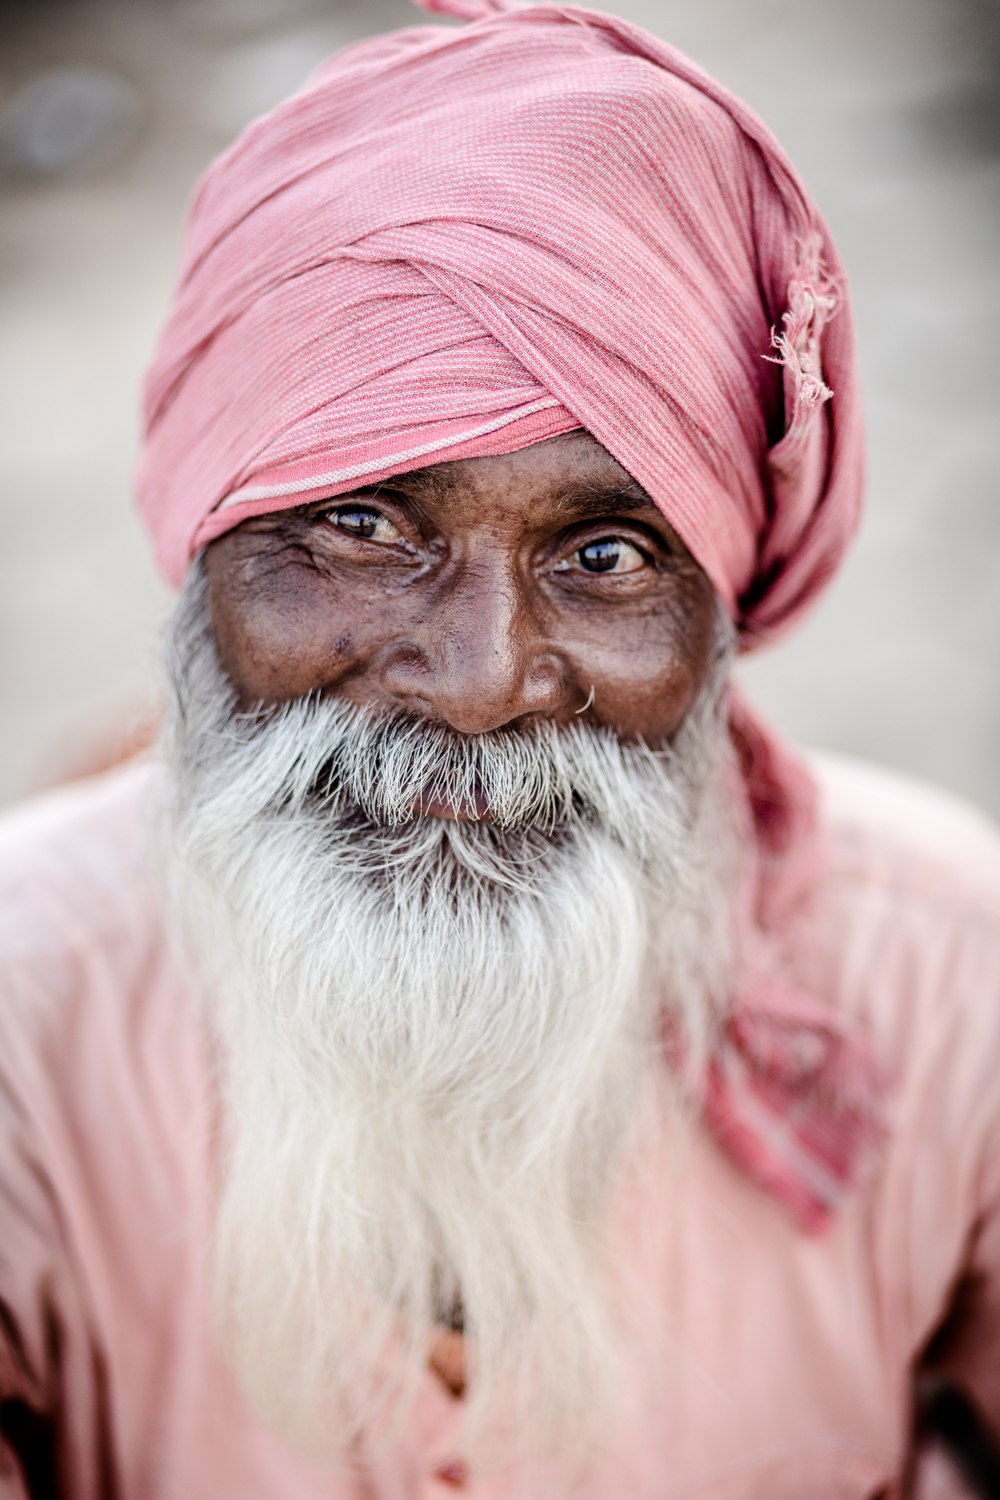 Pink Baba at Kumbh Mela in Ujjain.Kumbh Mela is a Hindu pilgramage festival held once every 12 years at a given site, drew an estimated 70 million visitors to the city of Ujjain in 2016.